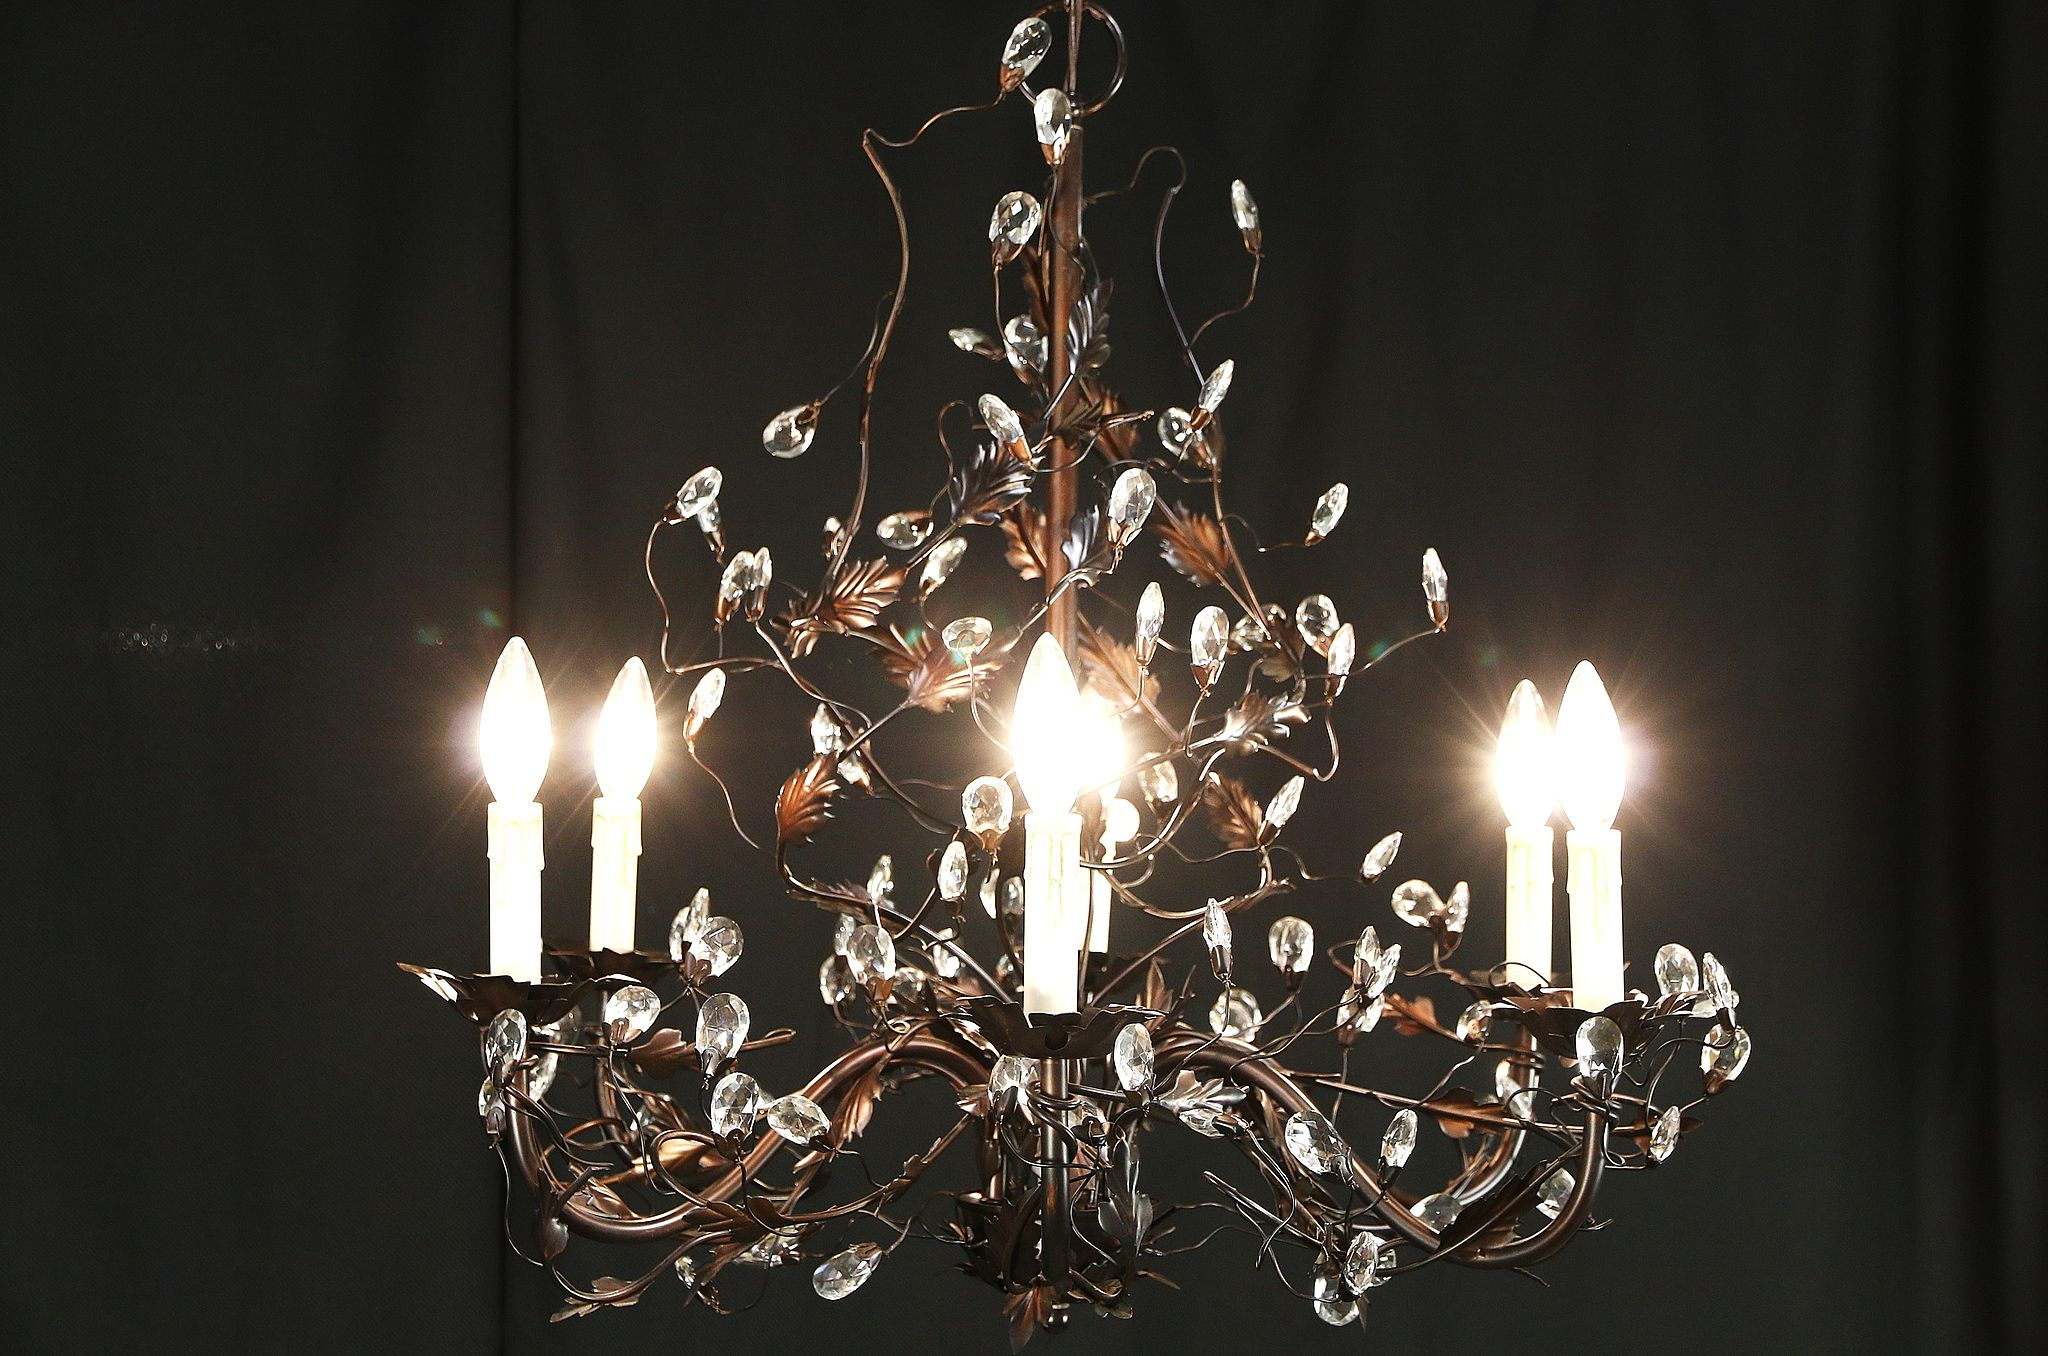 Sold wrought iron vine crystal chandelier 6 candles harp gallery wrought iron vine crystal chandelier 6 candles aloadofball Image collections